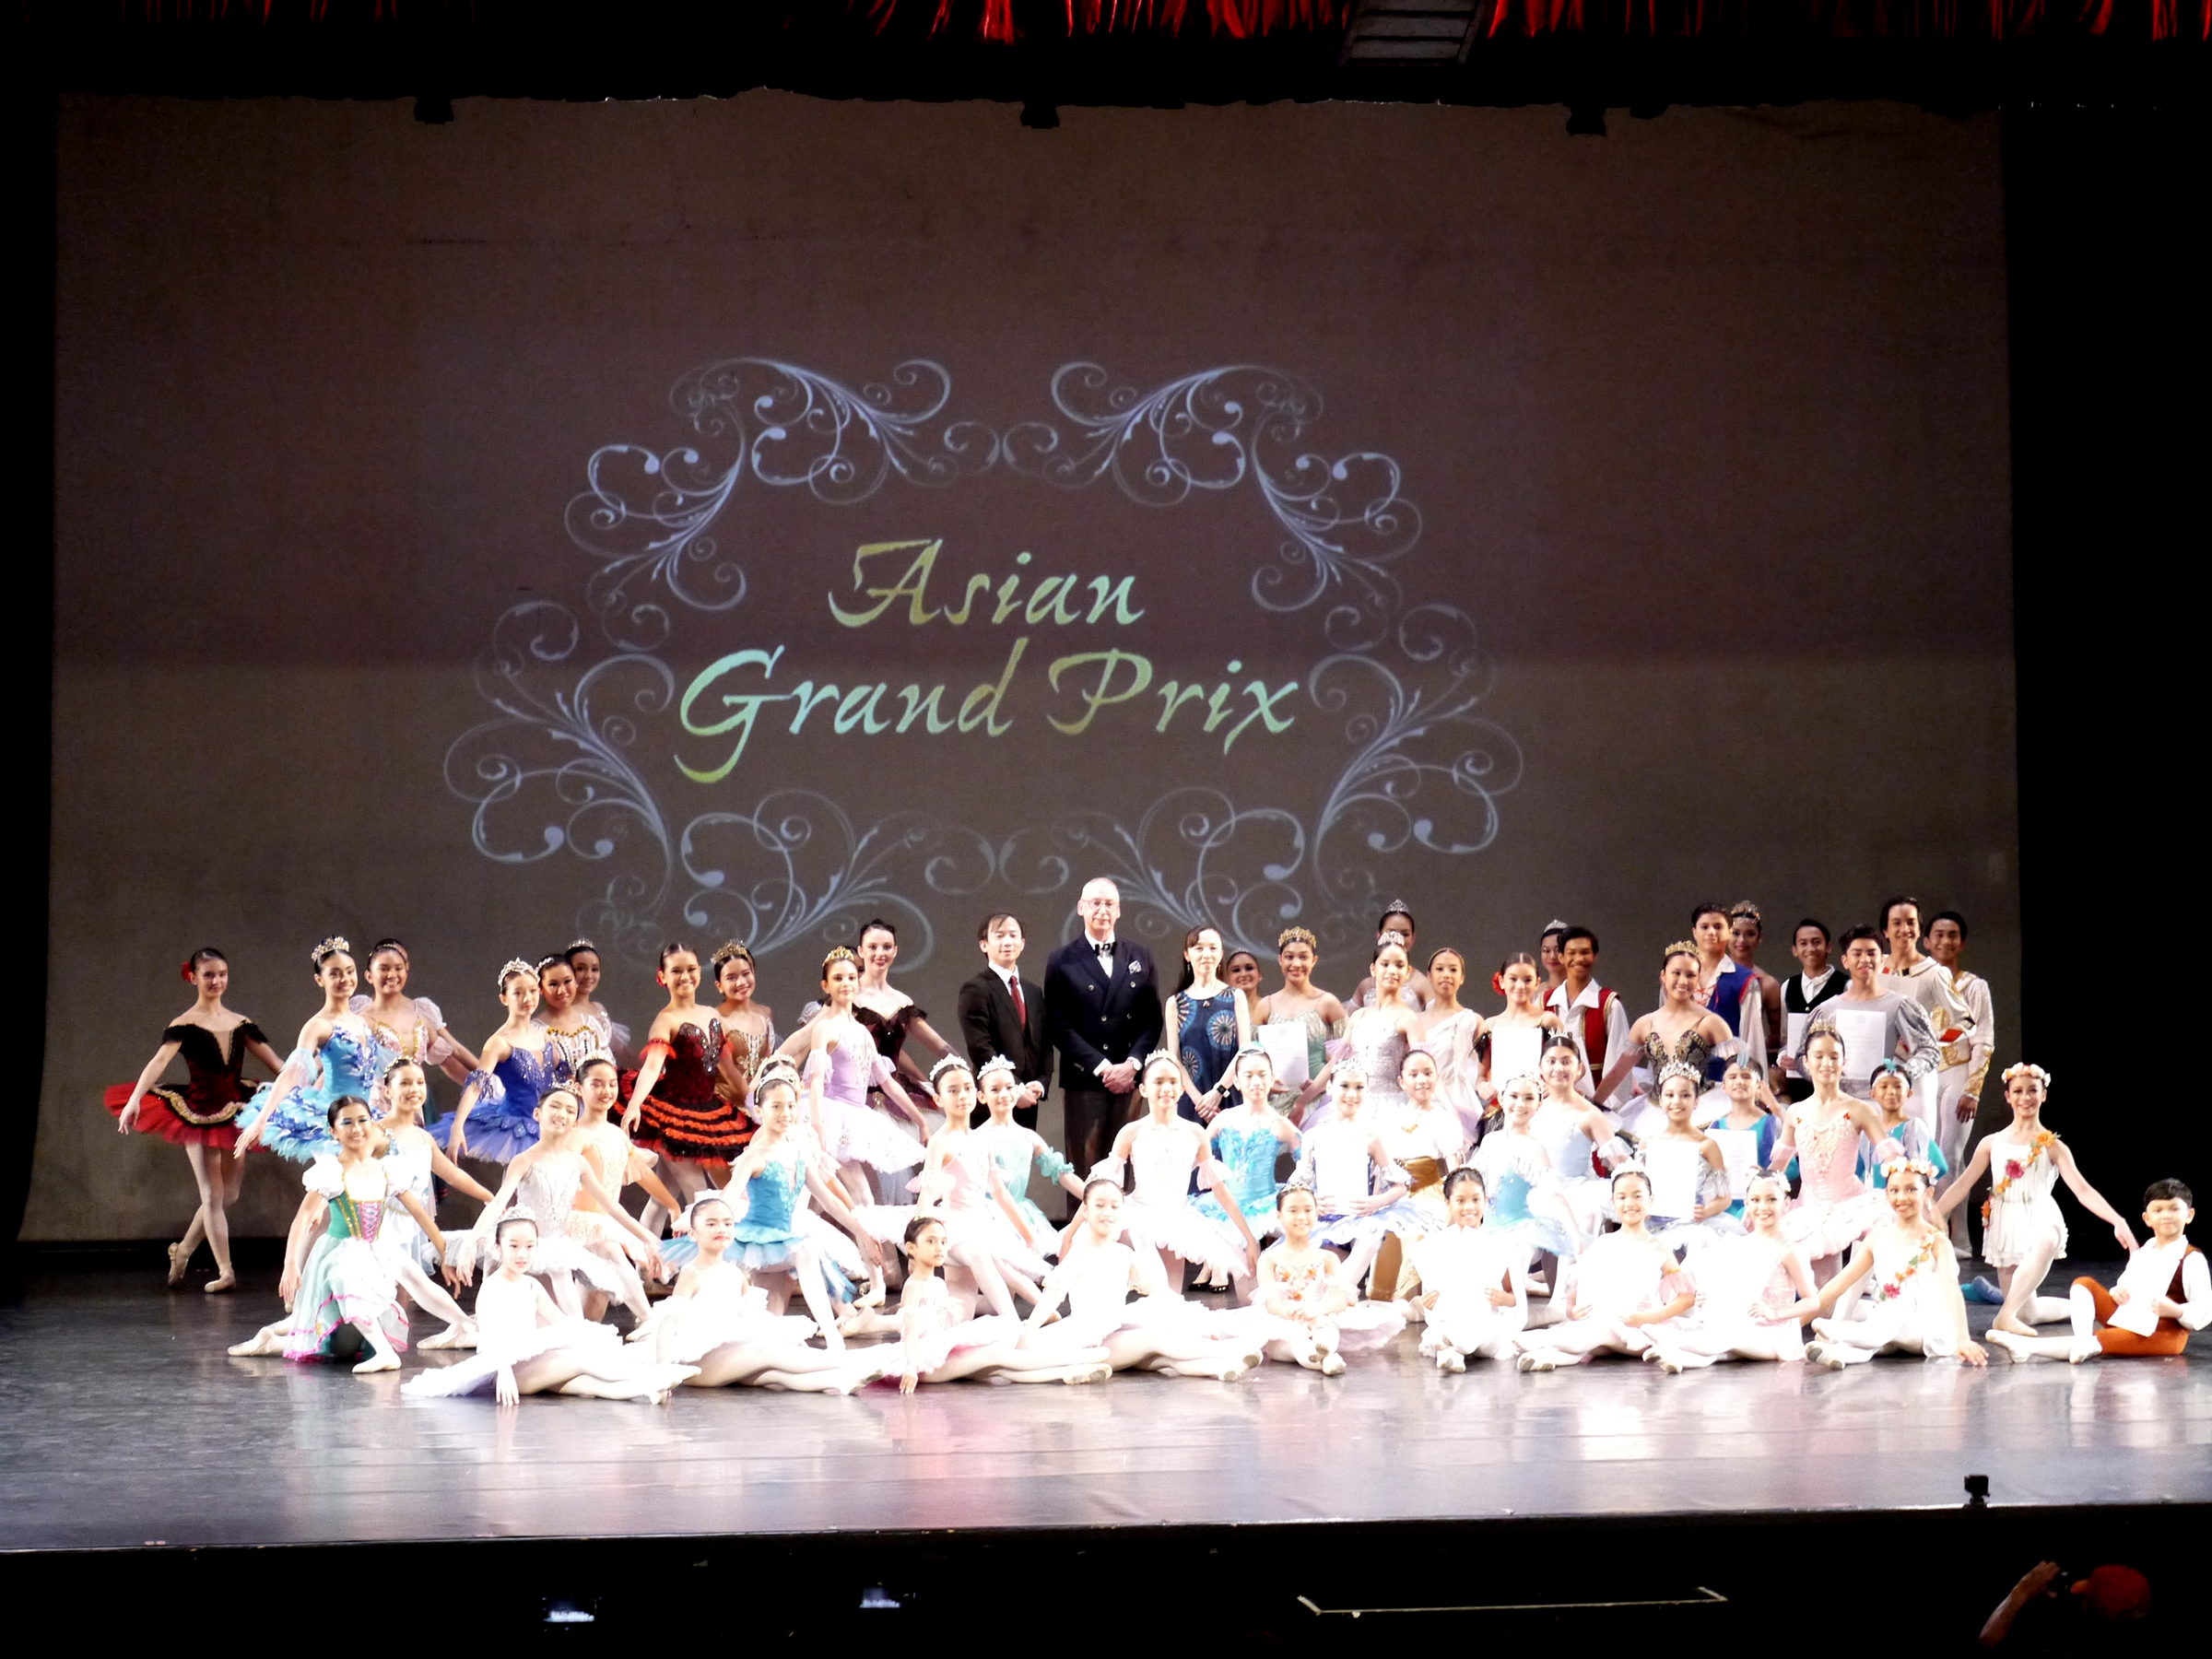 The 57 participants in the Asian Grand Prix Manila Regional Competition with the AGP Regional Jury (standing, center) composed of: So Hon Wah, chairman of AGP; Garry Trinder, director of the New Zealand School of Dance; and Eriko Ochiai, former principal dancer of the Hong Kong Ballet. Photo by Giselle P. Kasilag